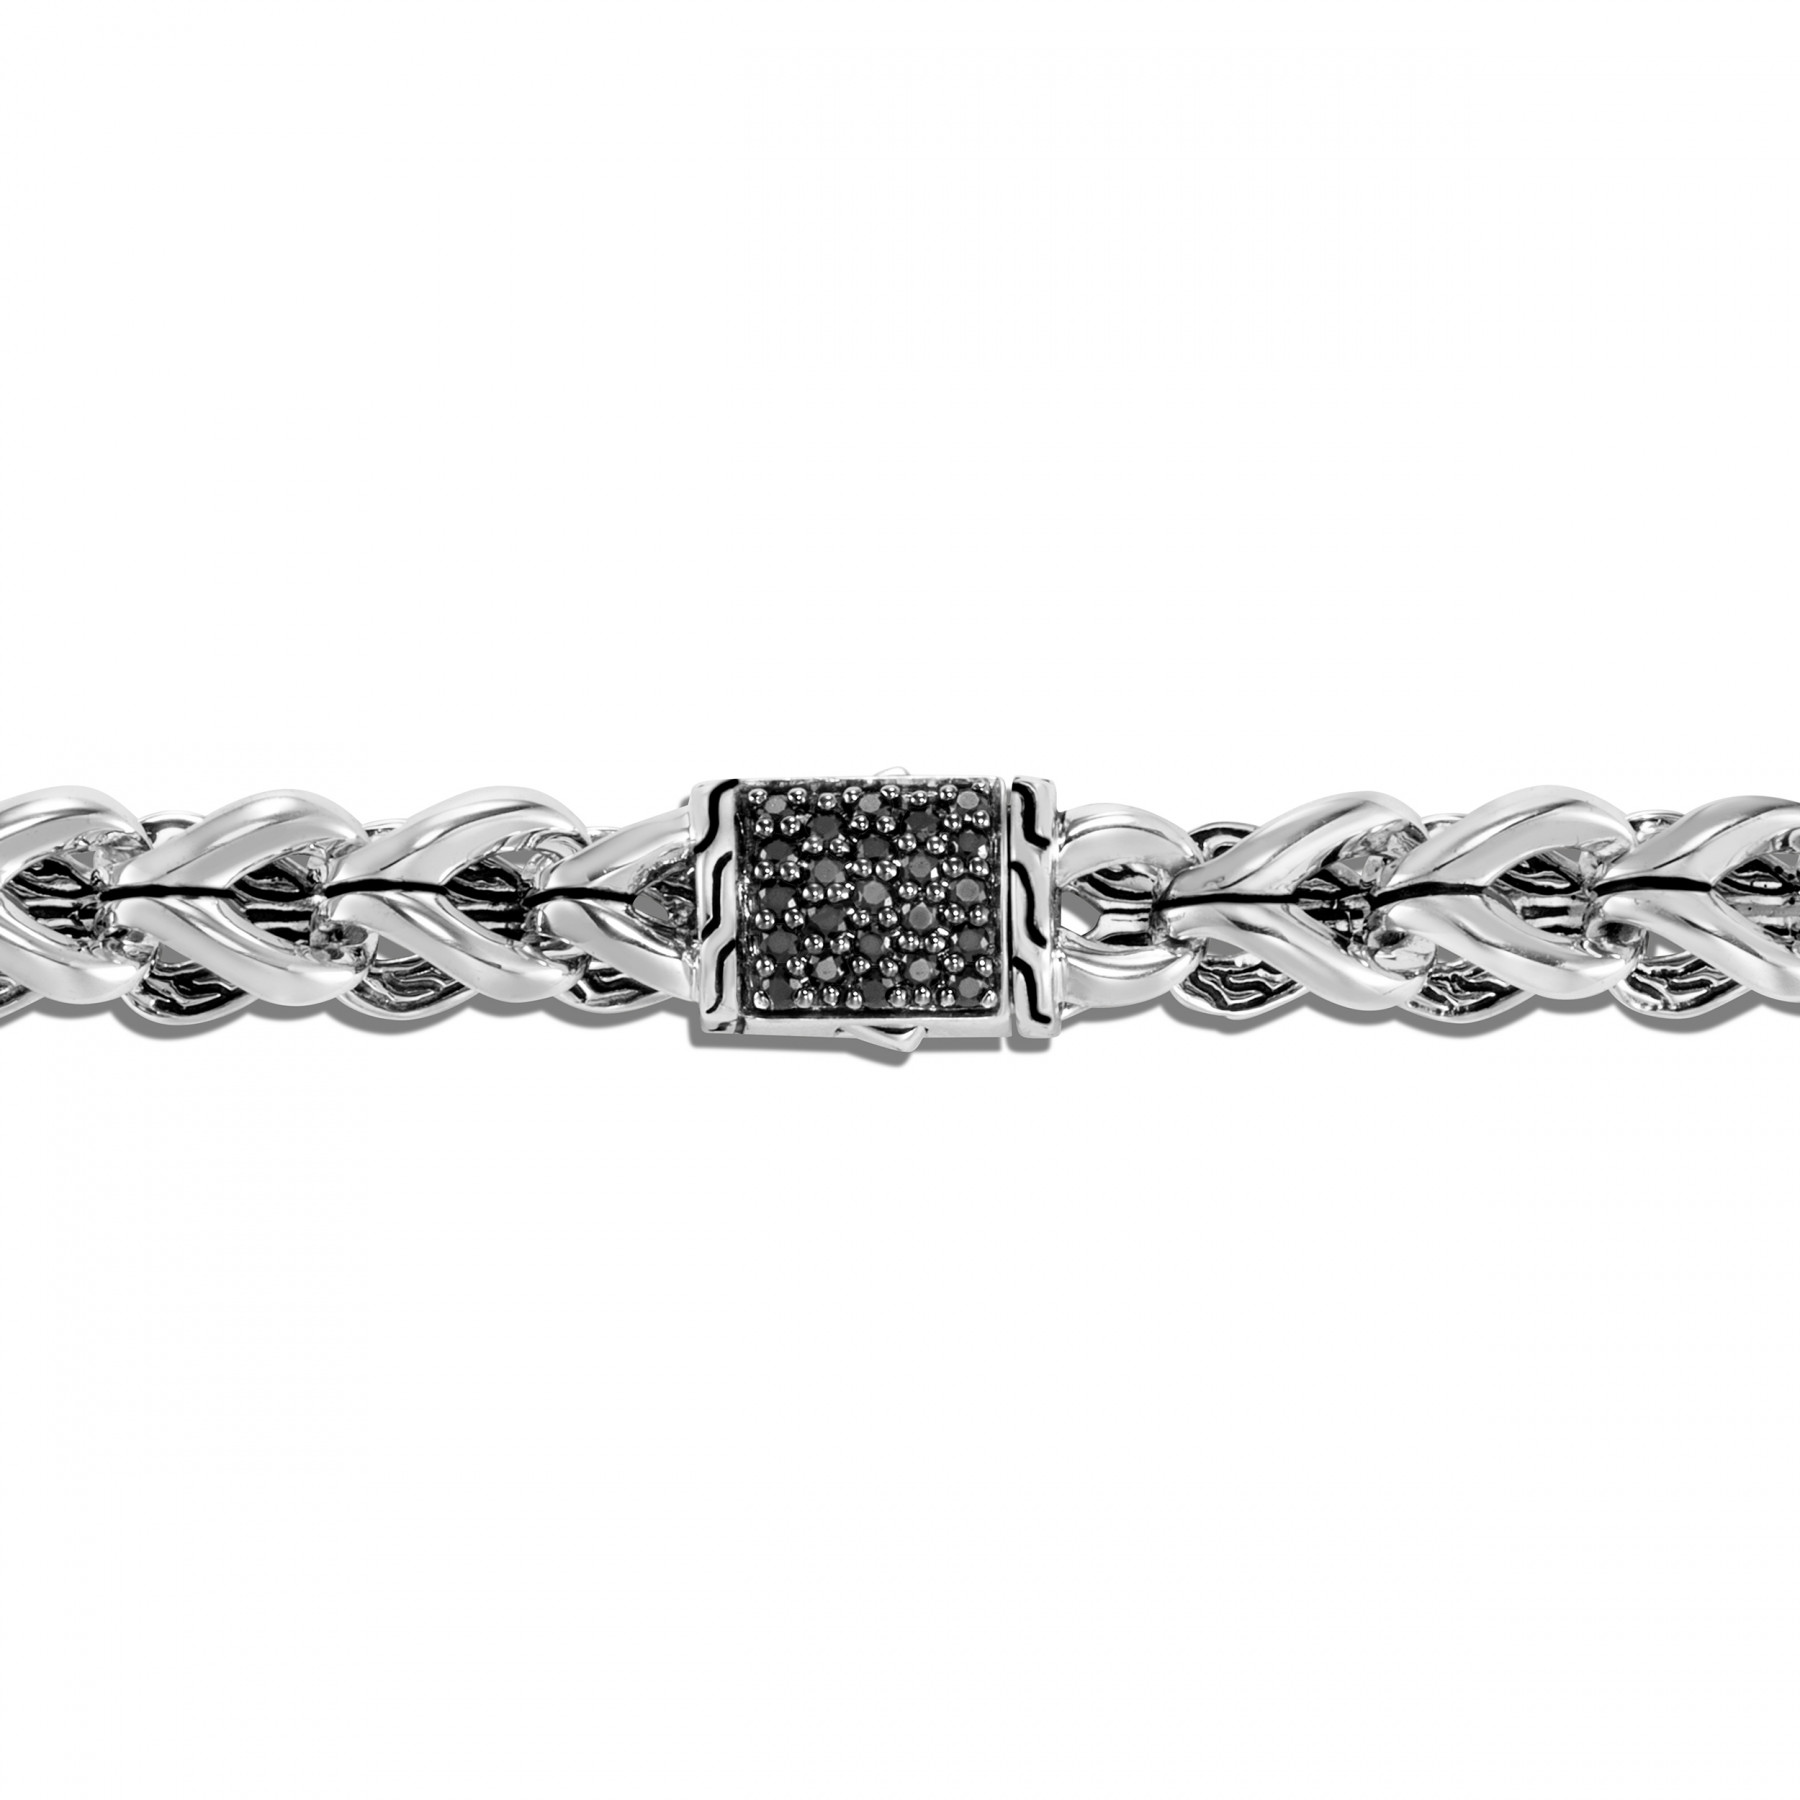 John Hardy Asli Classic Chain Black Sapphire Bracelet in Sterling Silver clasp view